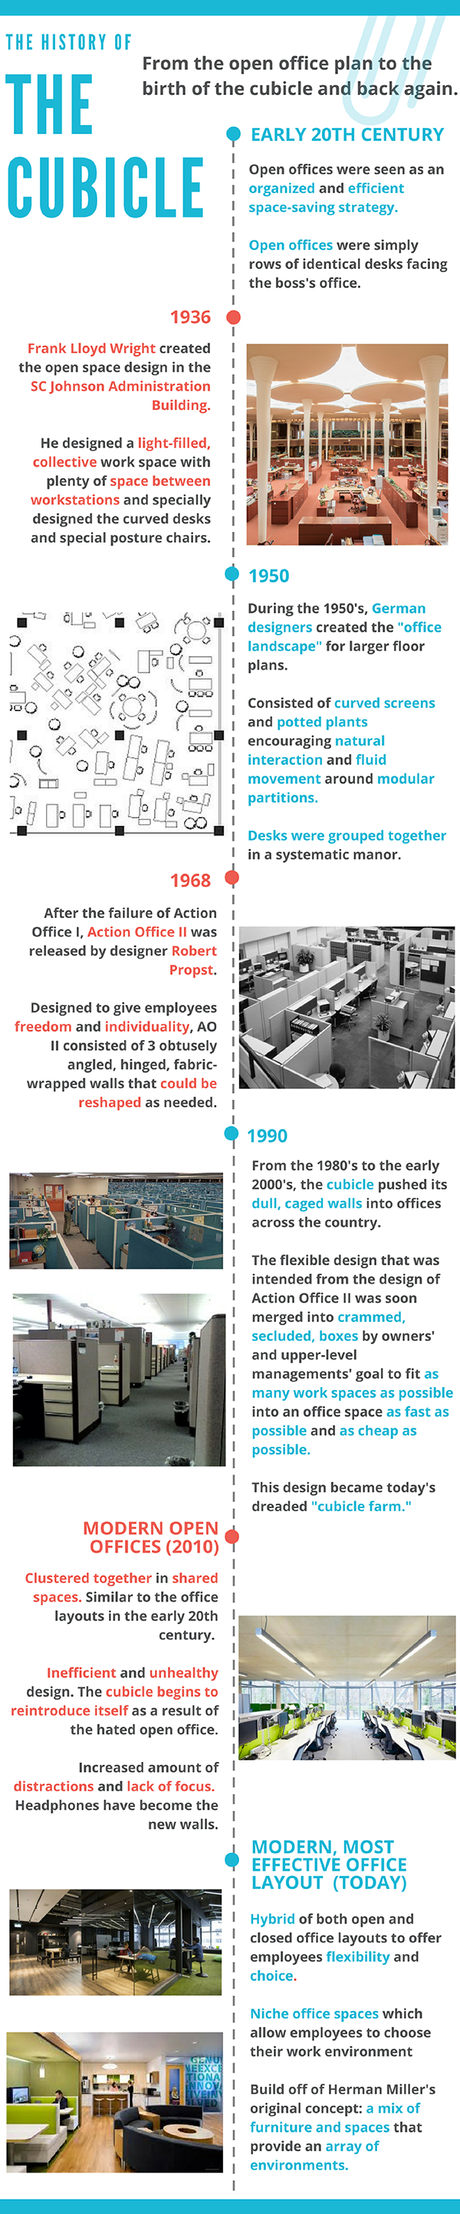 History of the Cubicle